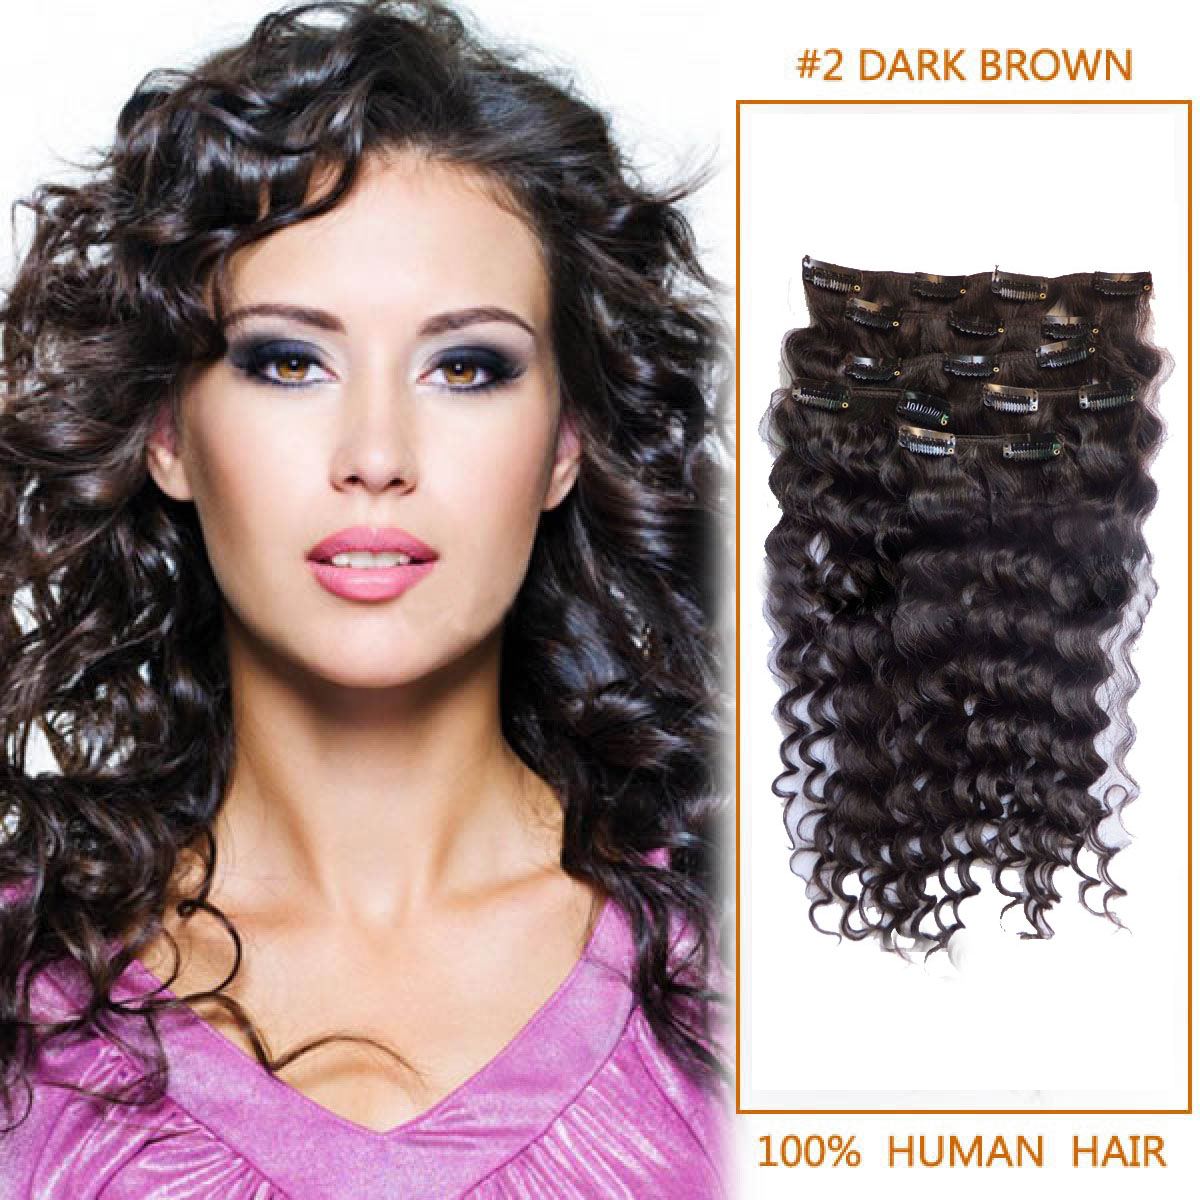 22 Inch 2 Dark Brown Clip In Human Hair Extensions Deep Curly 7 Pcs